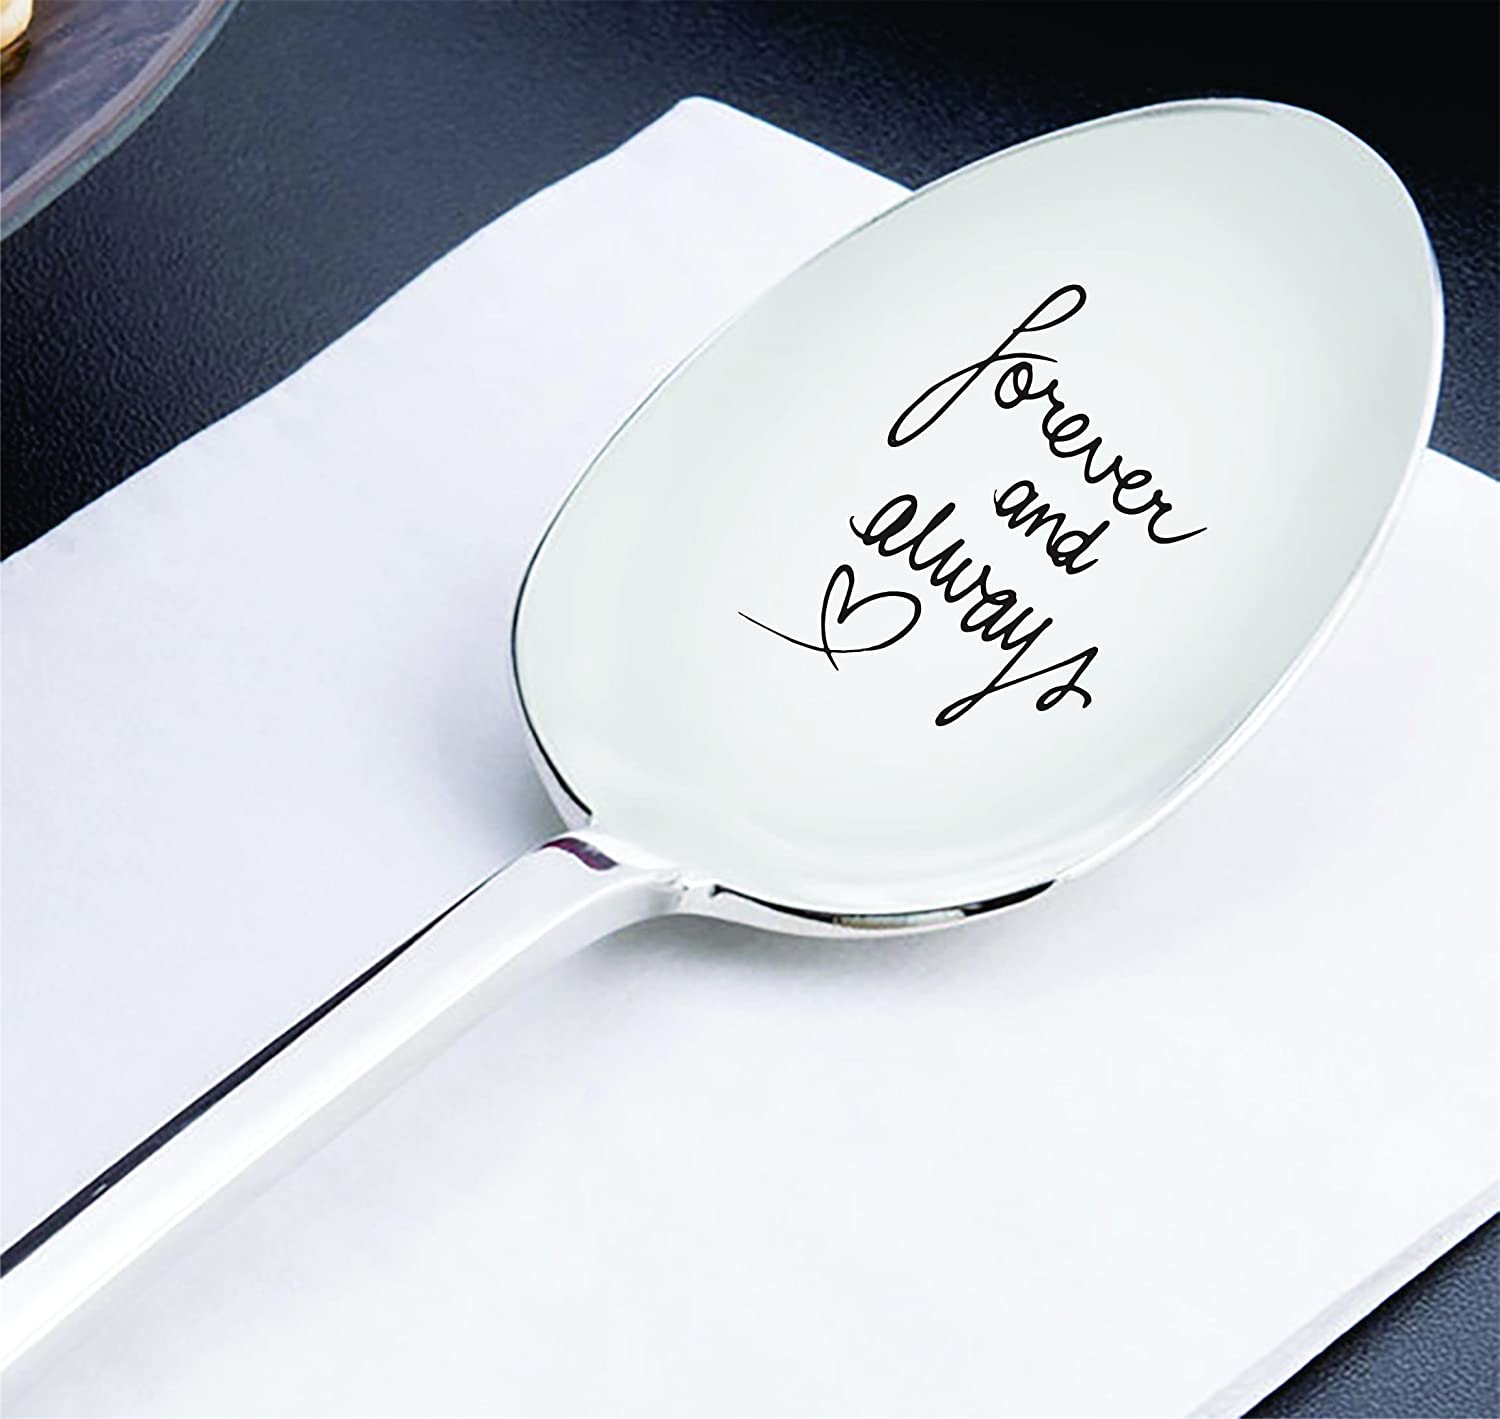 Best friend gifts - Anniversary gifts - Wedding gifts - Gift for mom - Forever and always spoon - Long distance relationship gifts - Moving away gifts - Mothers day gifts - Engraved spoon – 7 inches